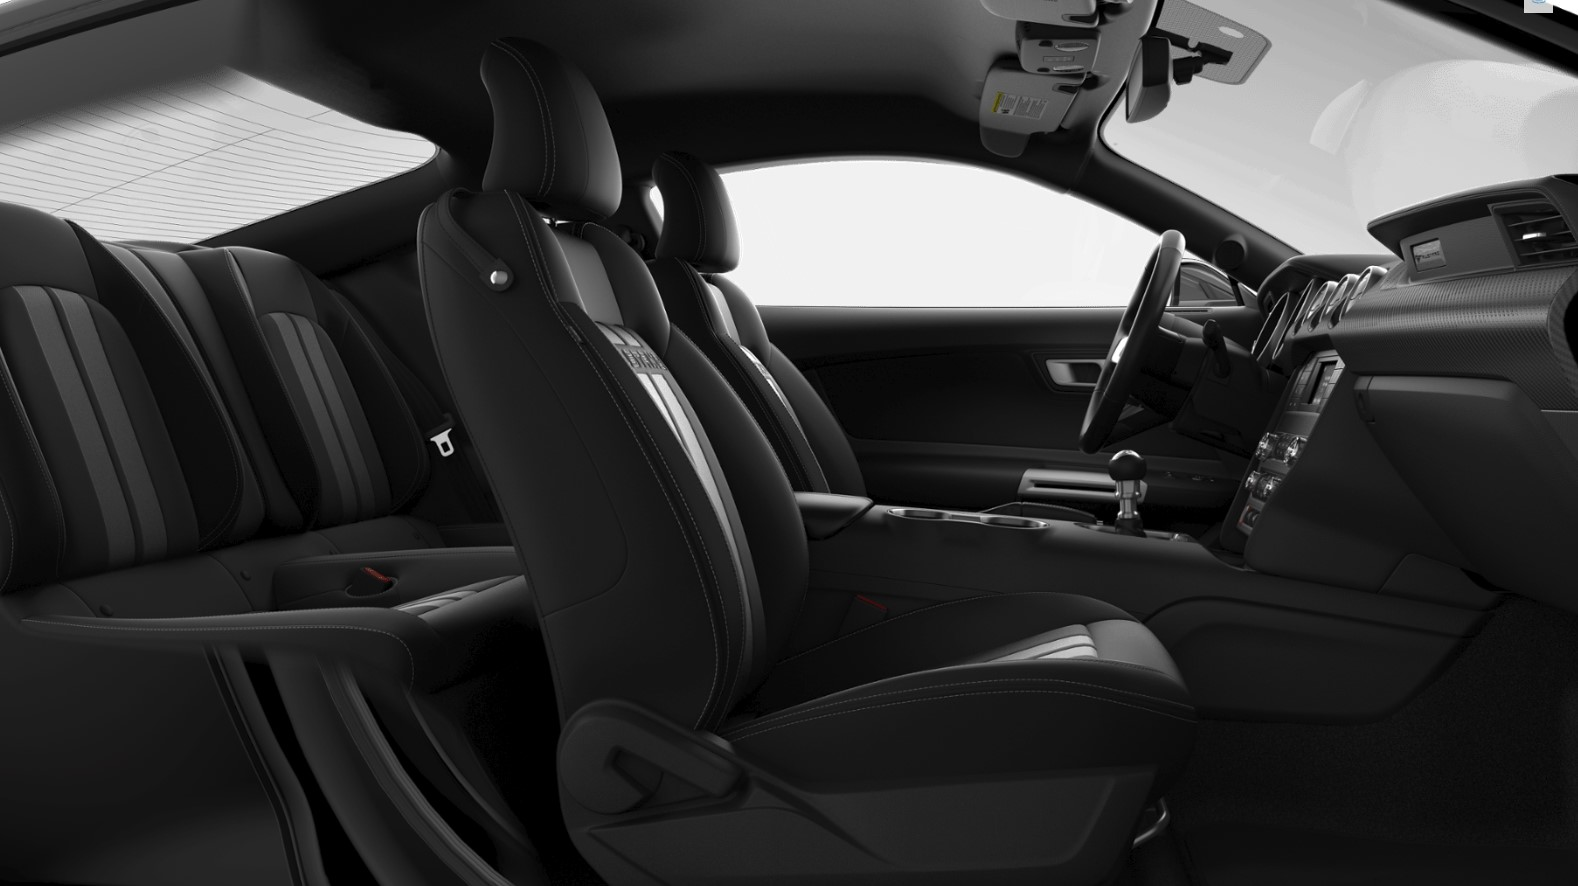 2019 Ford Mustang EcoBoost Black Interior